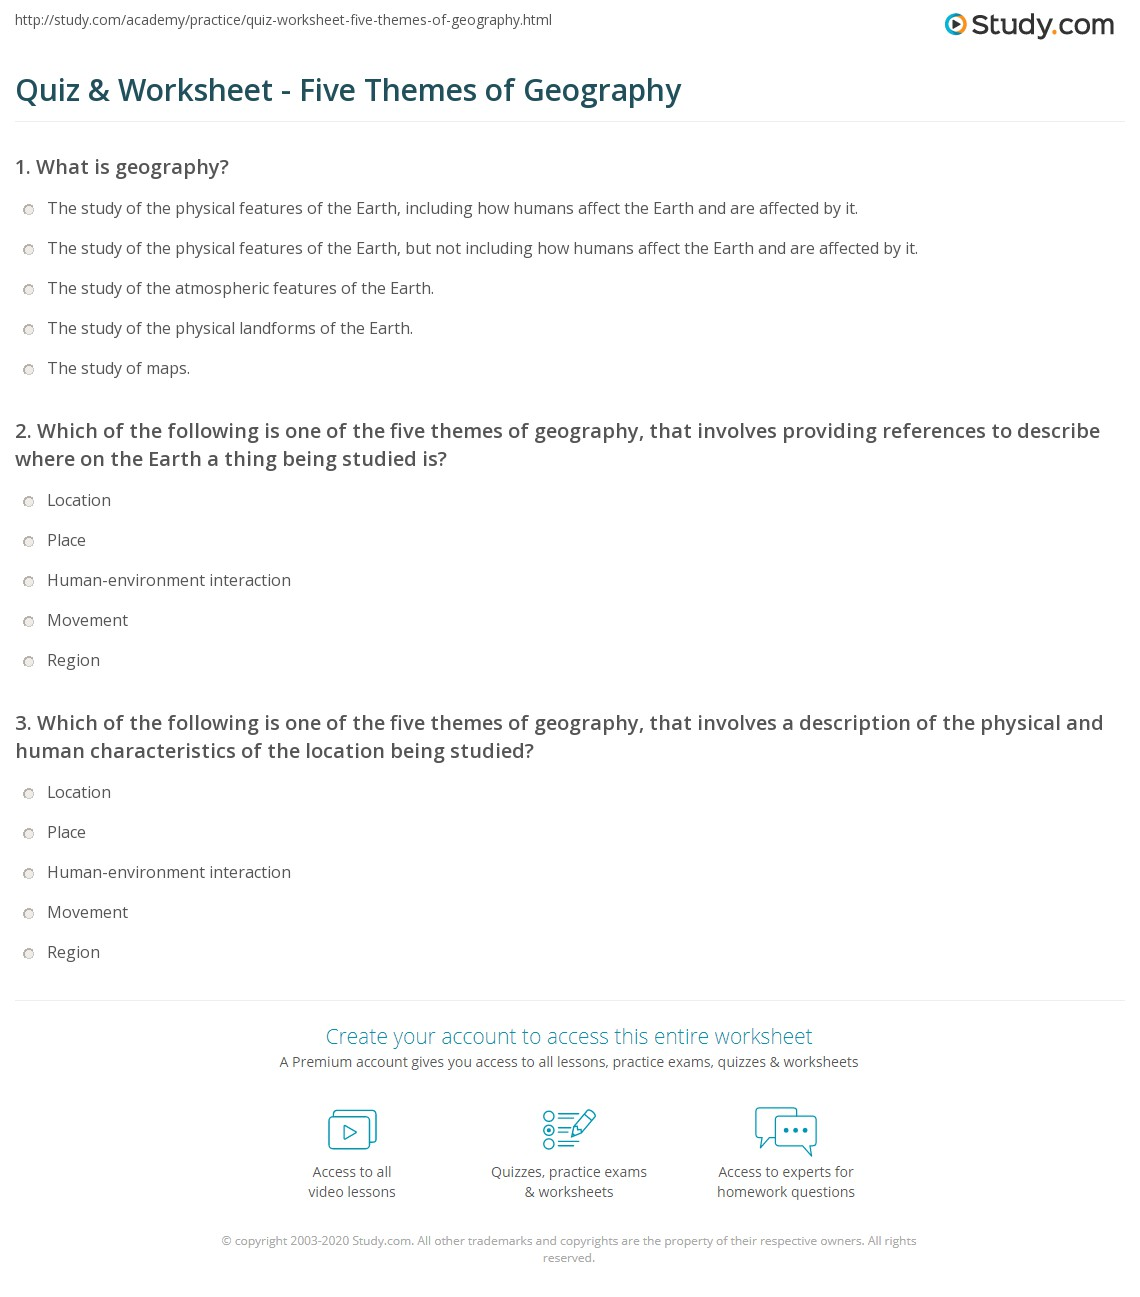 Printables Themes Of Geography Worksheet quiz worksheet five themes of geography study com print what are the worksheet